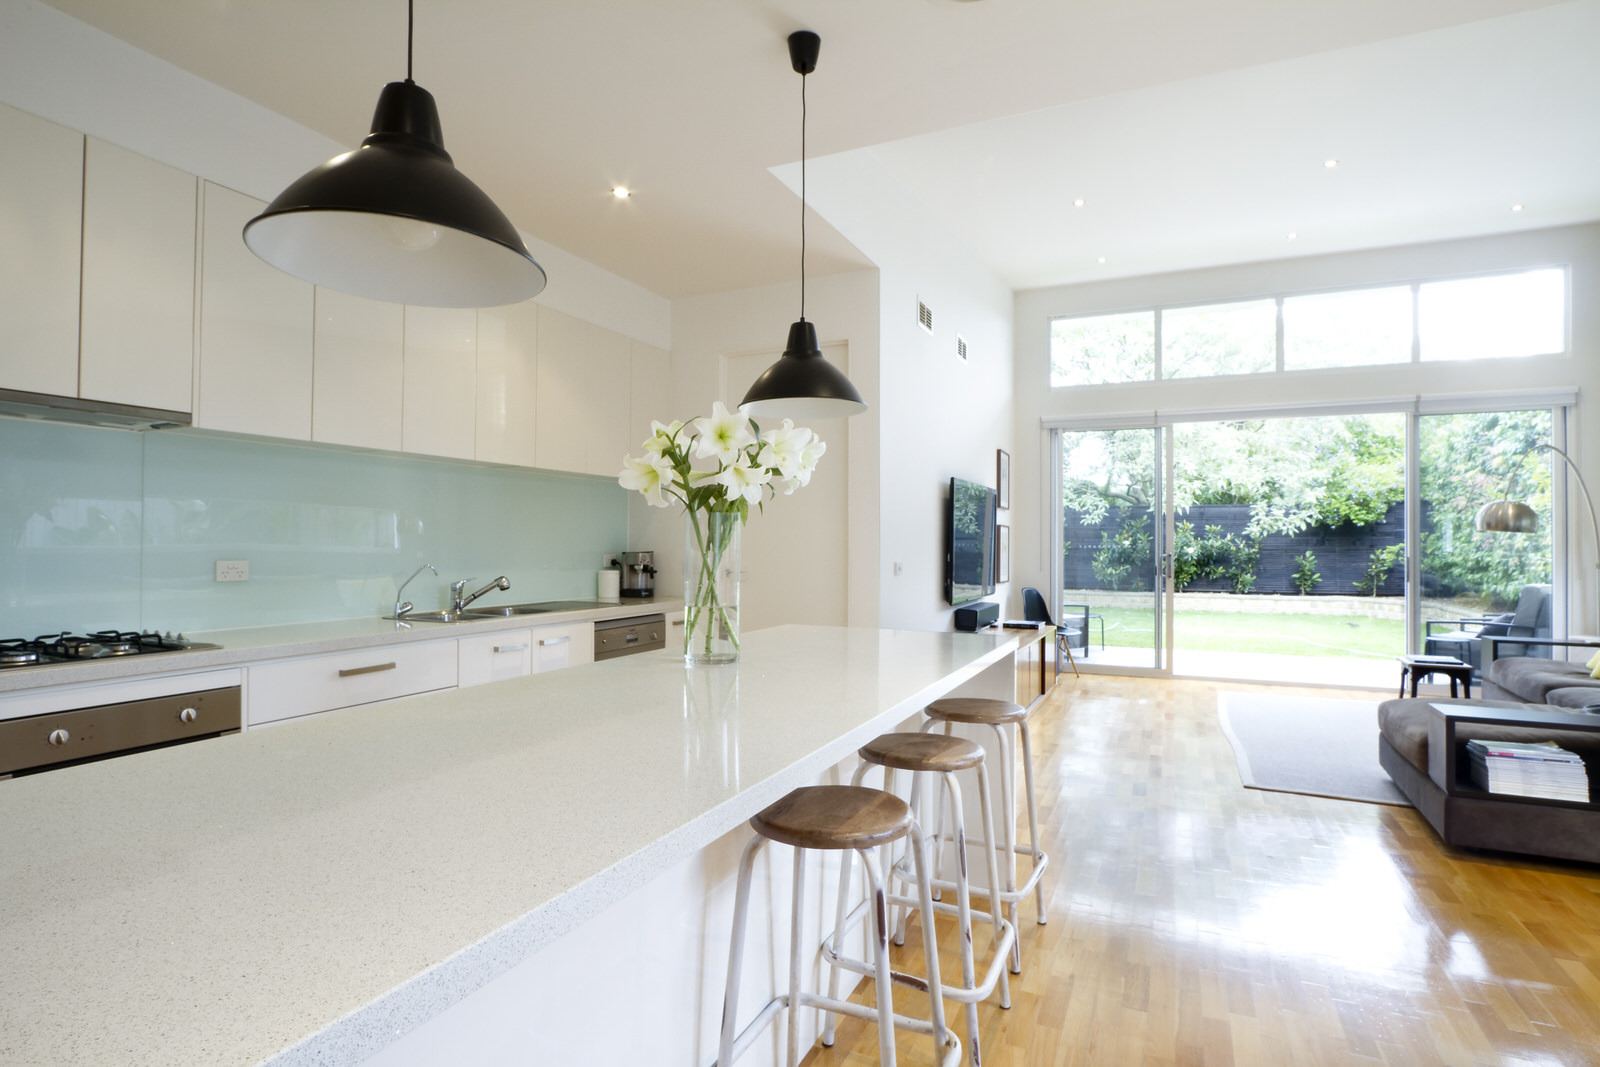 Lutron_Lighting_Kitchen_Diner_White_Cabinets_Glass_Splashback_Brown_Flooring_Leading_To_Garden_Black_Fence_Wall_Mounted_Smart TV.jpeg